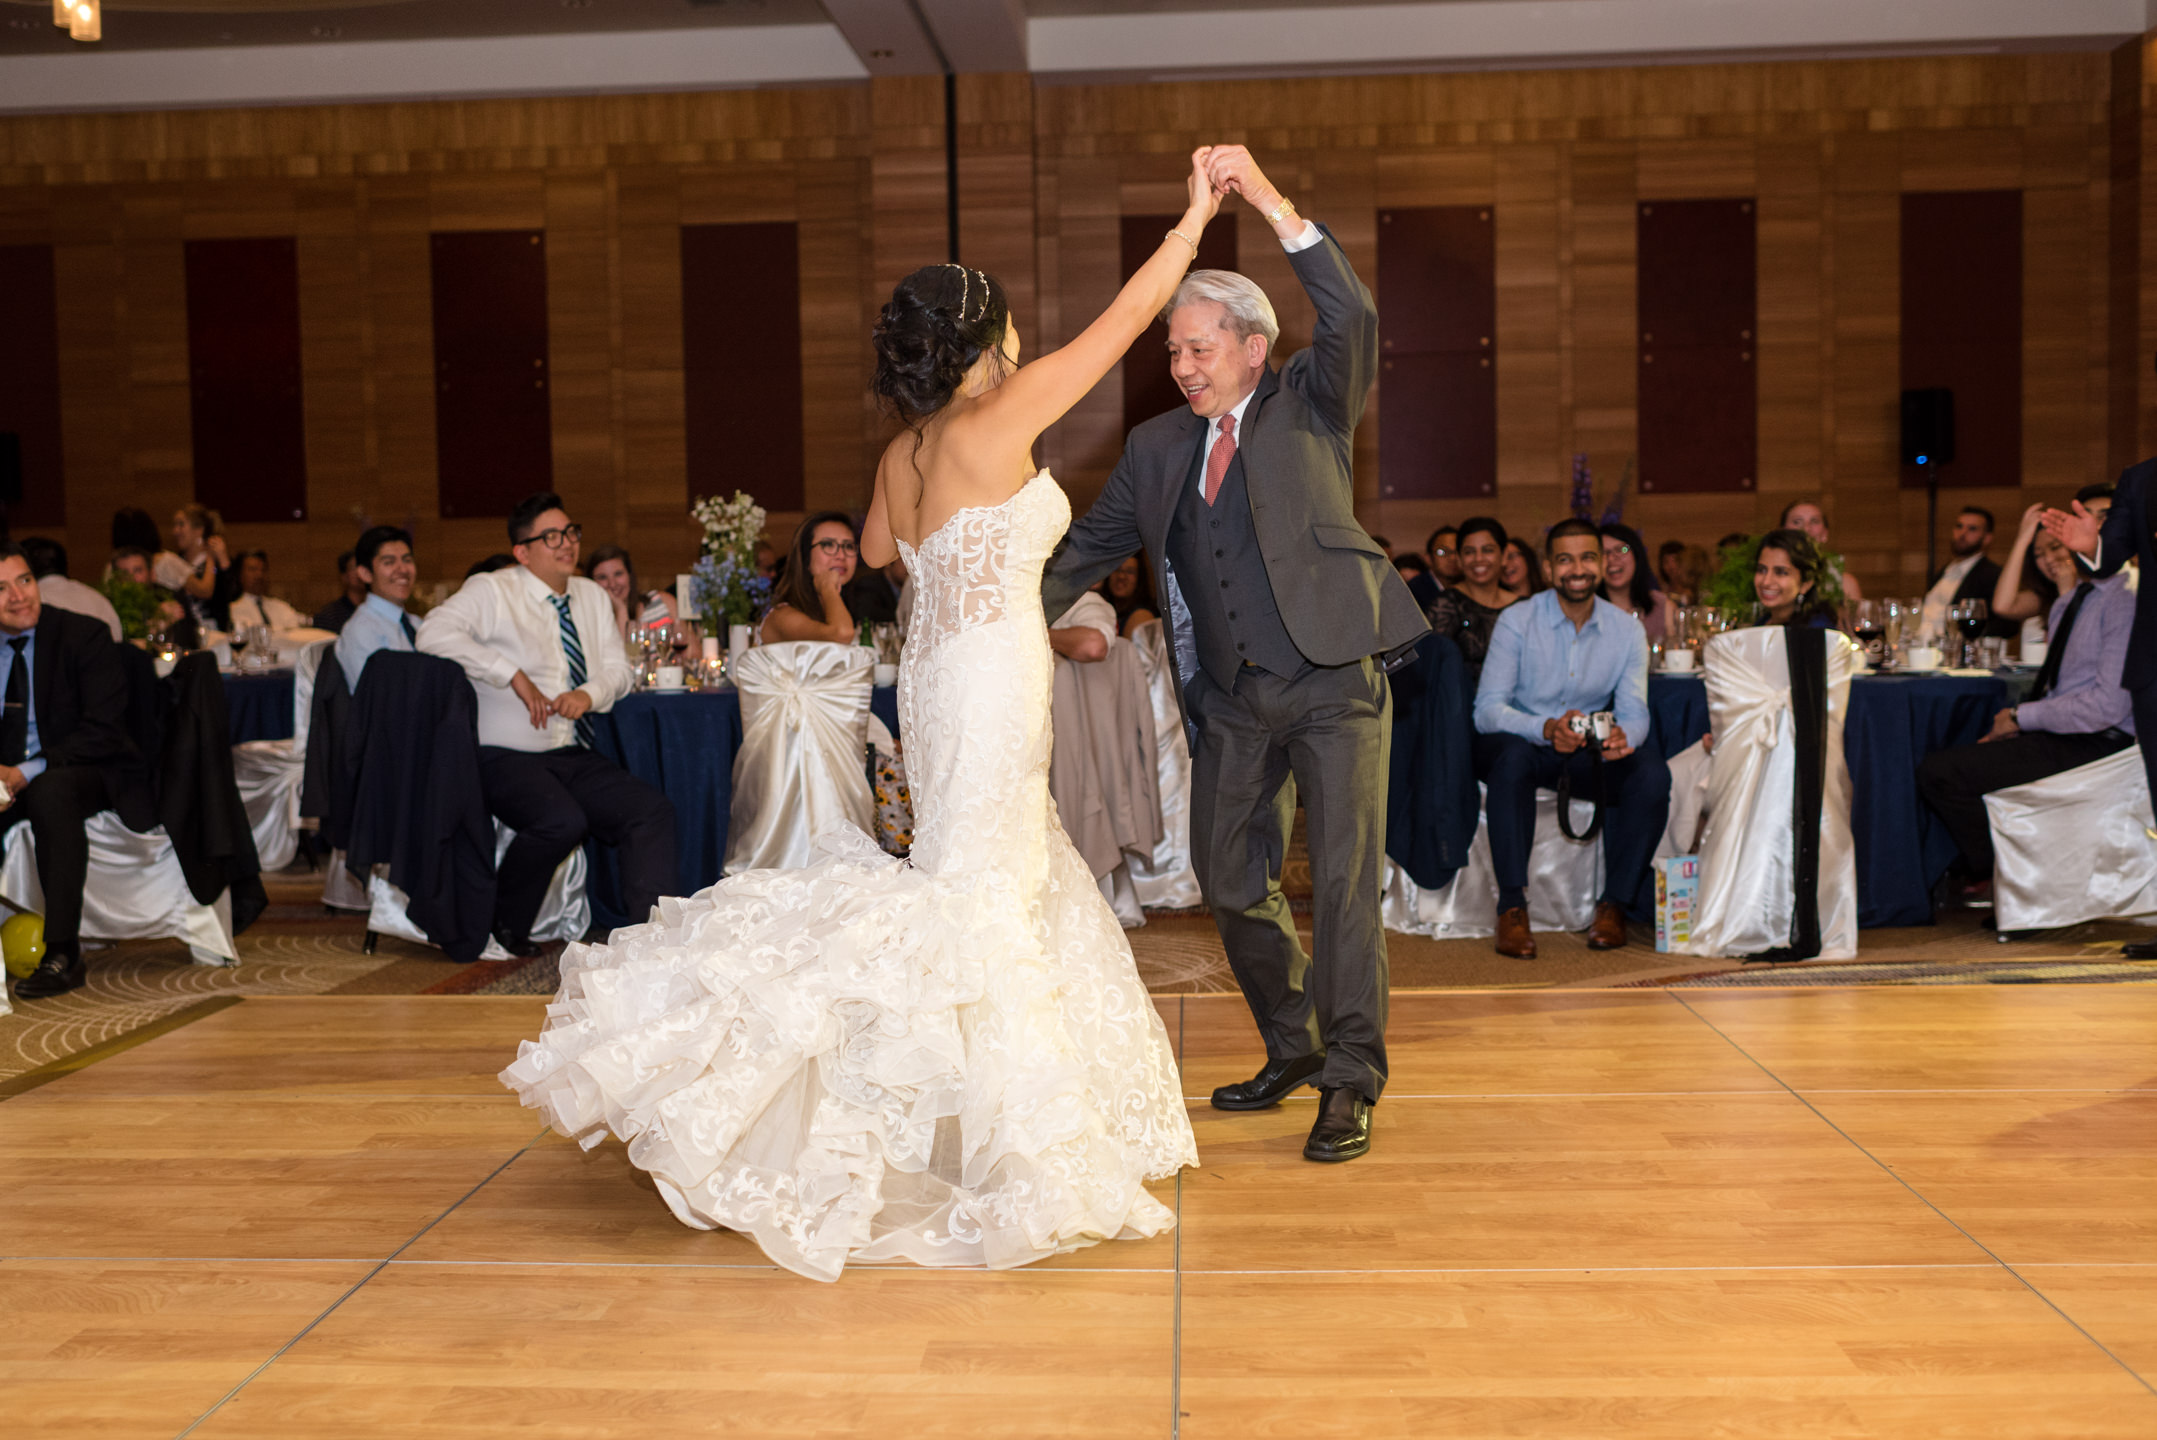 Asian Bride and Father Dance during Wedding Reception